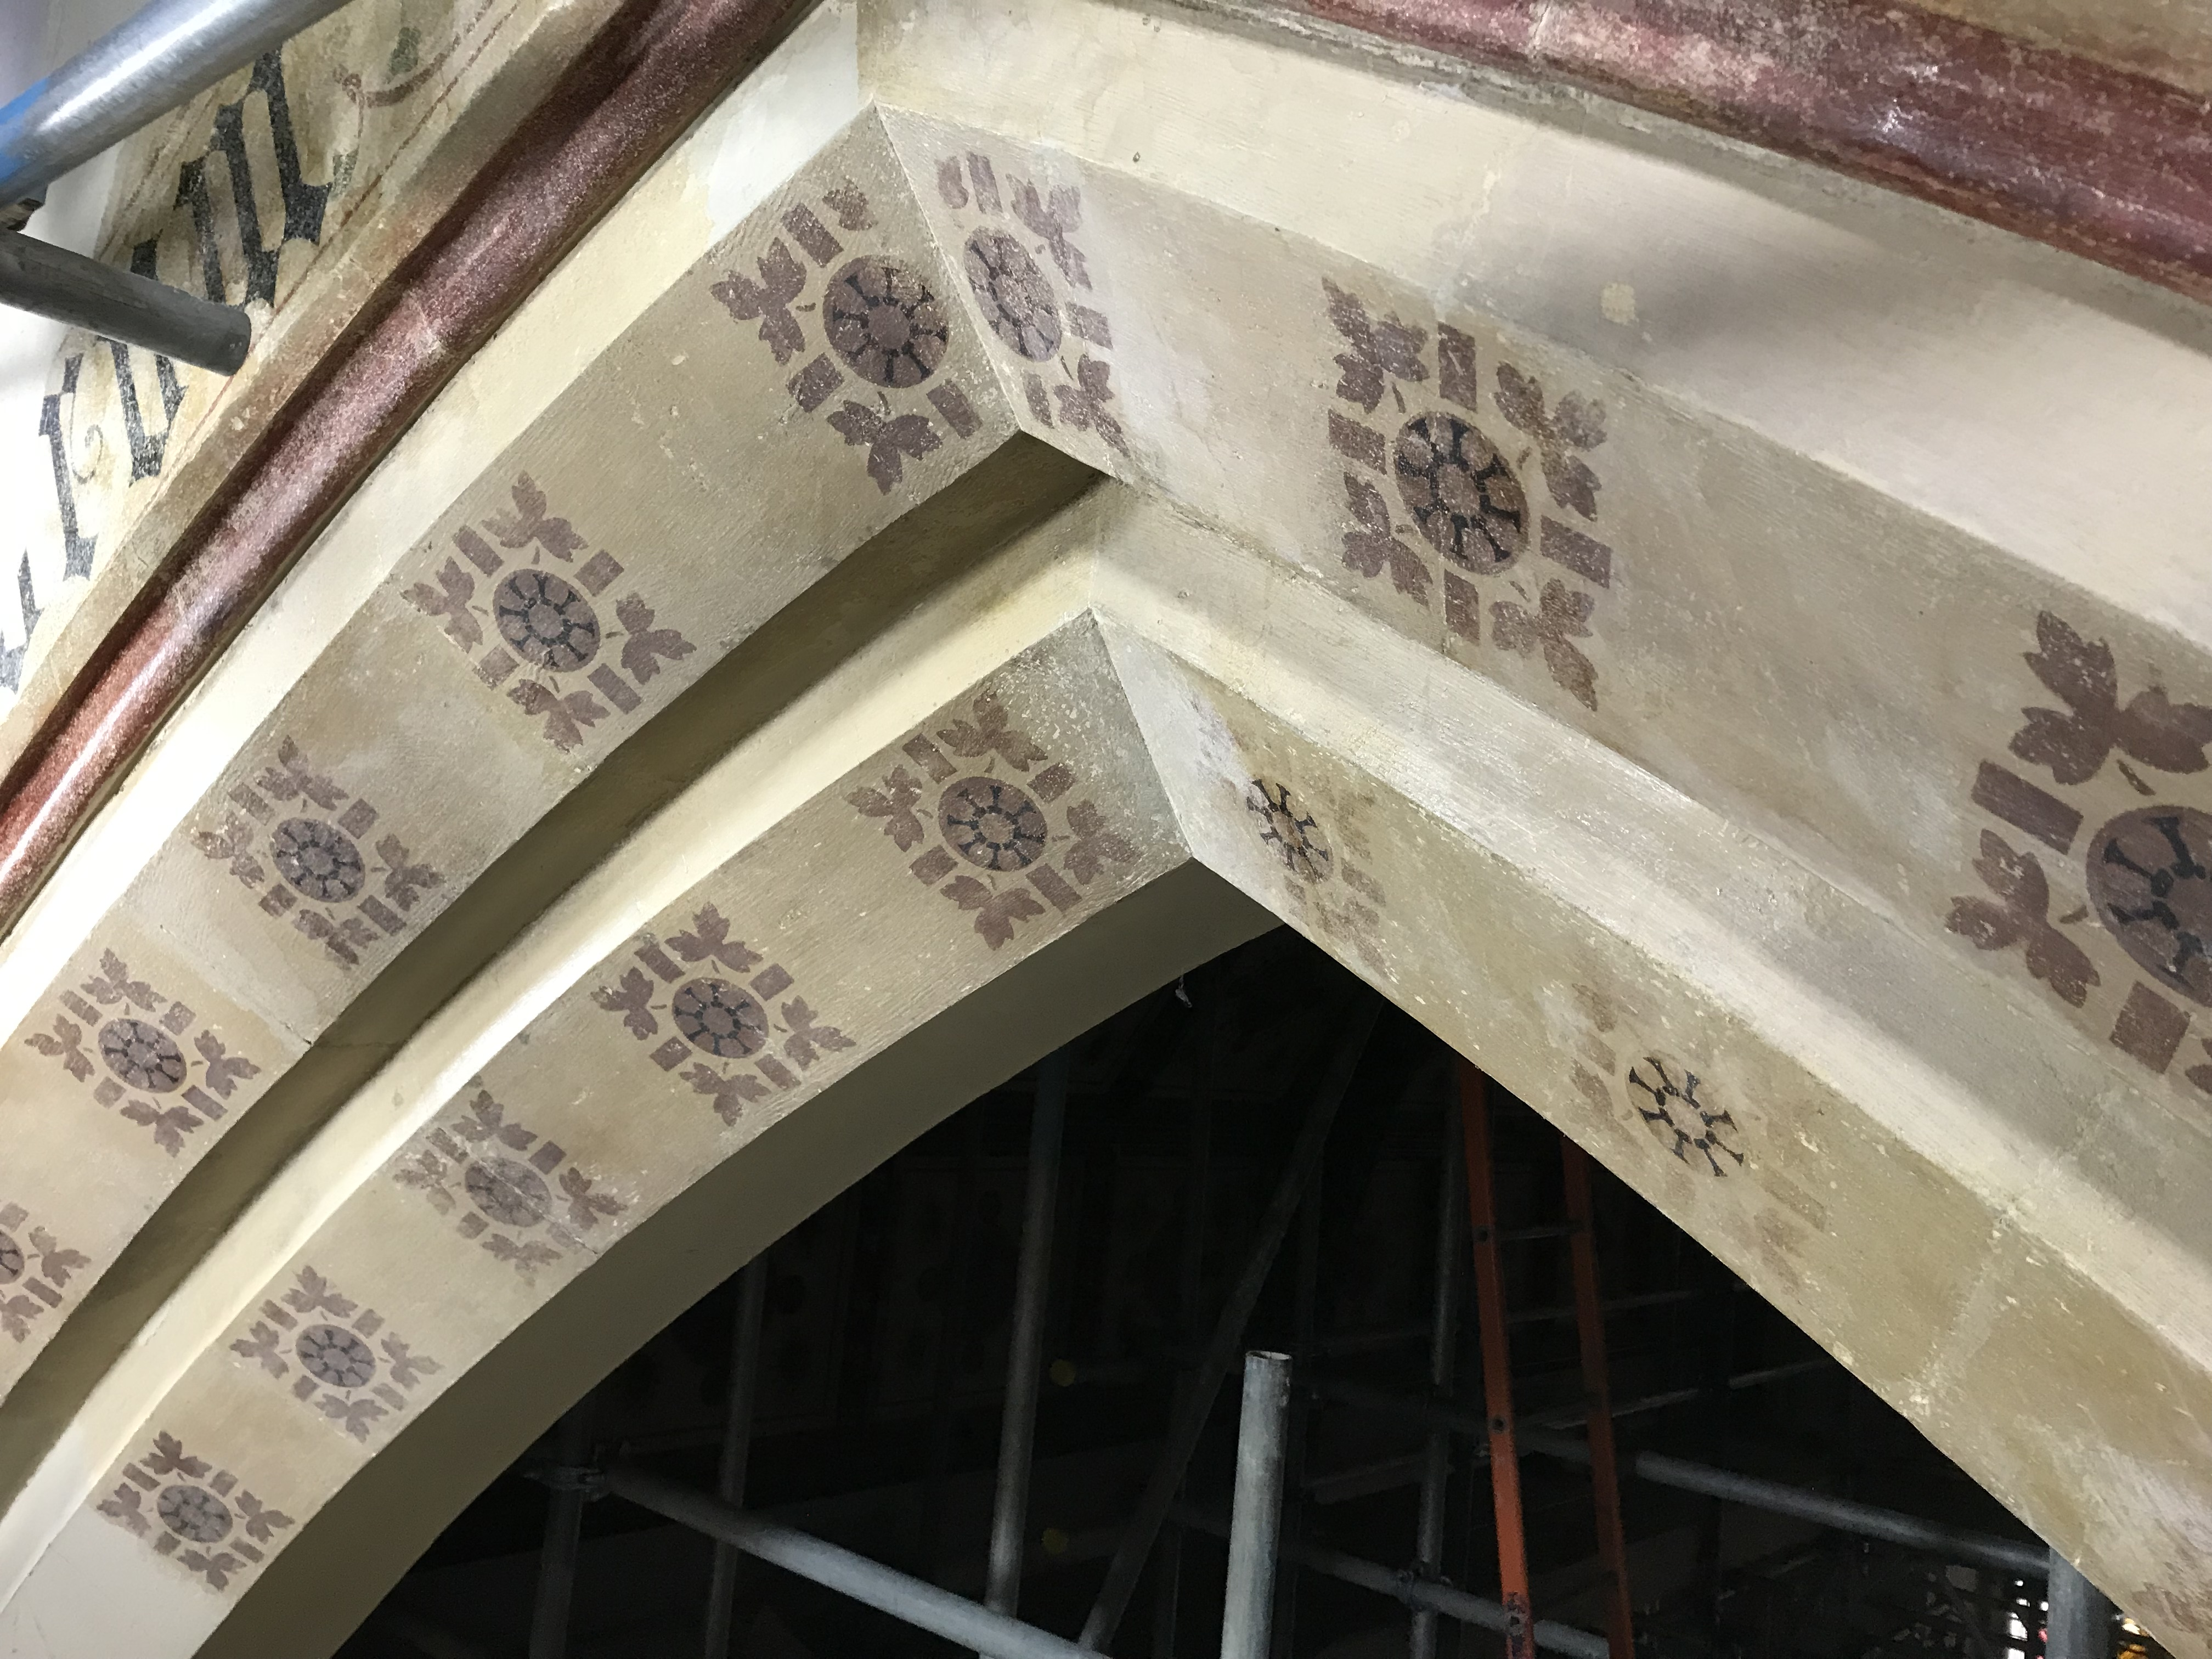 Miguel restoring the historic stencilling on the chancel arch.